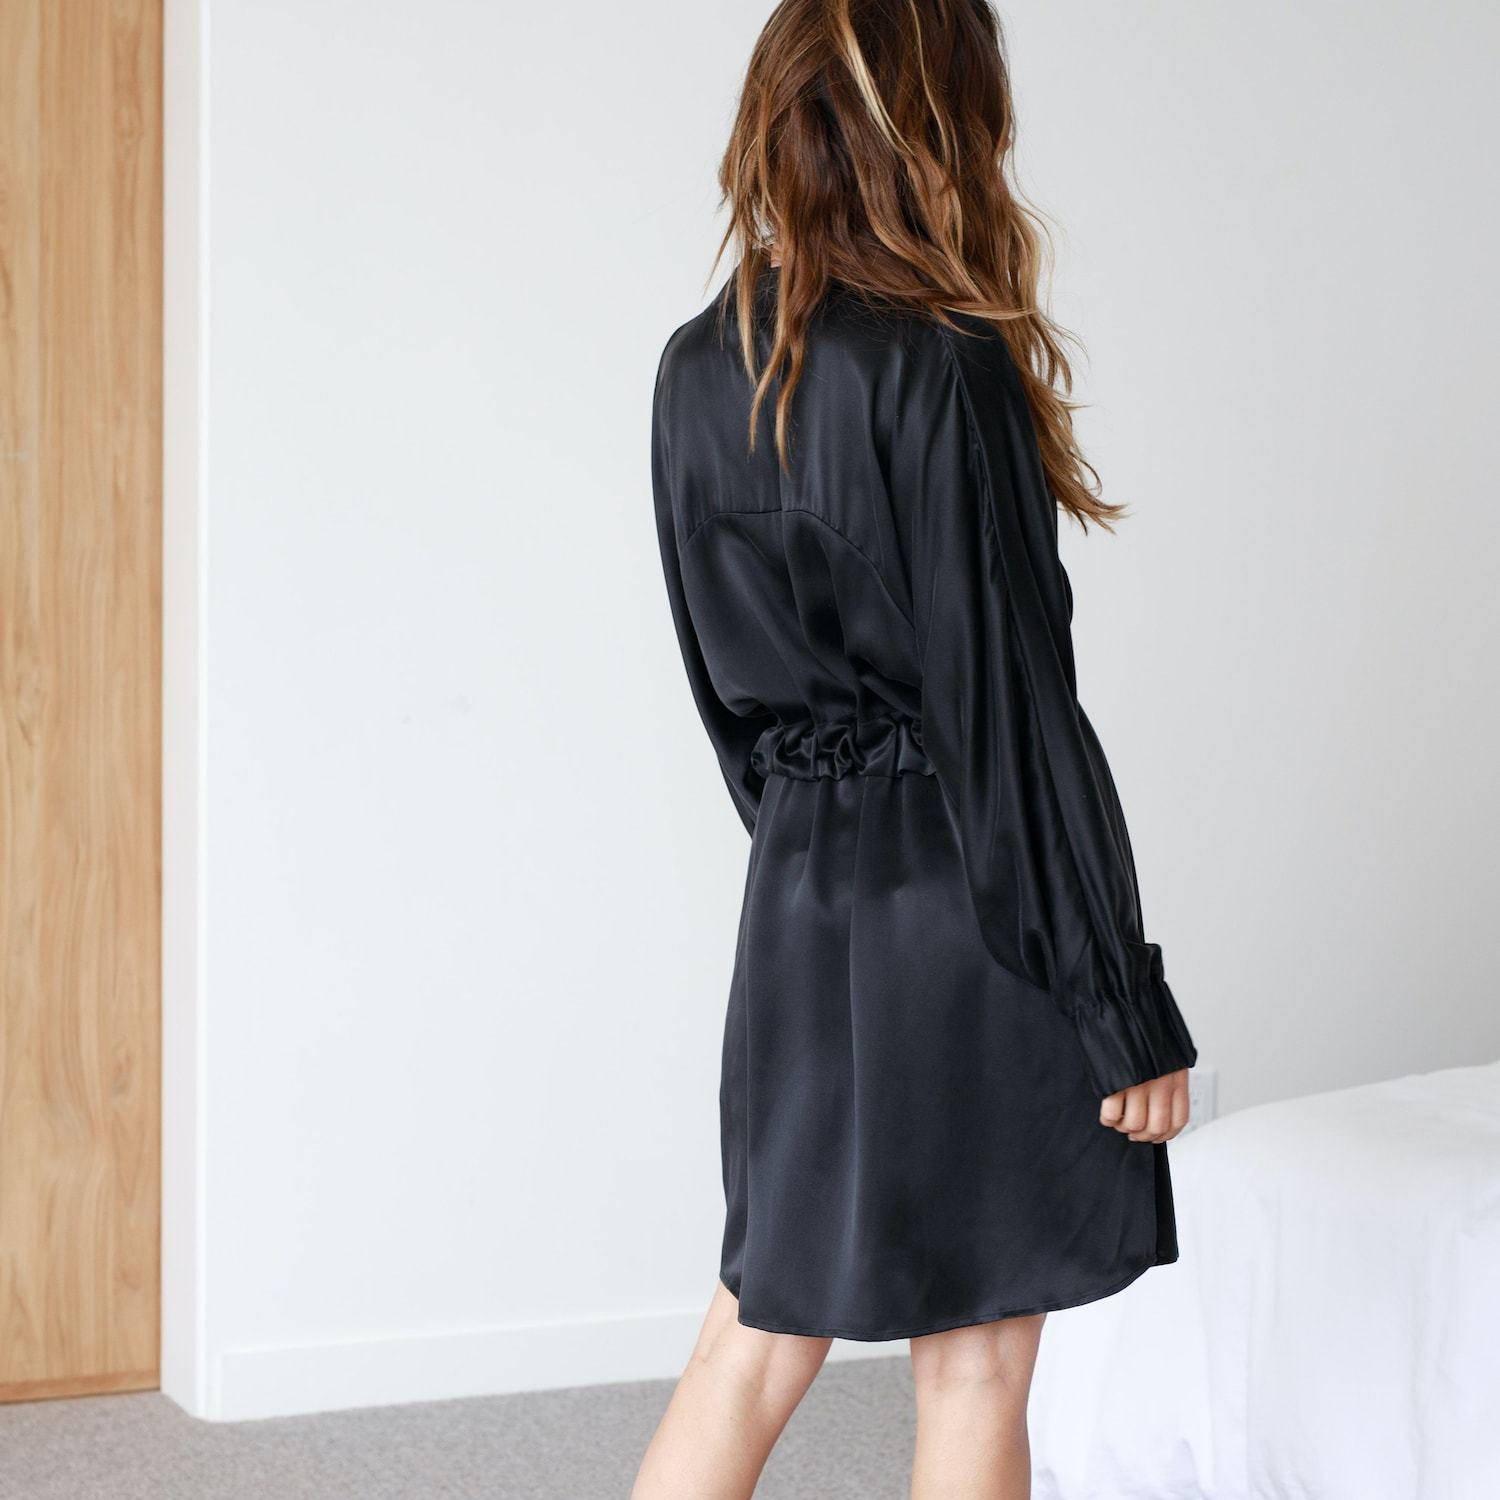 Lunya Sleepwear Washable Silk Robe - #Black